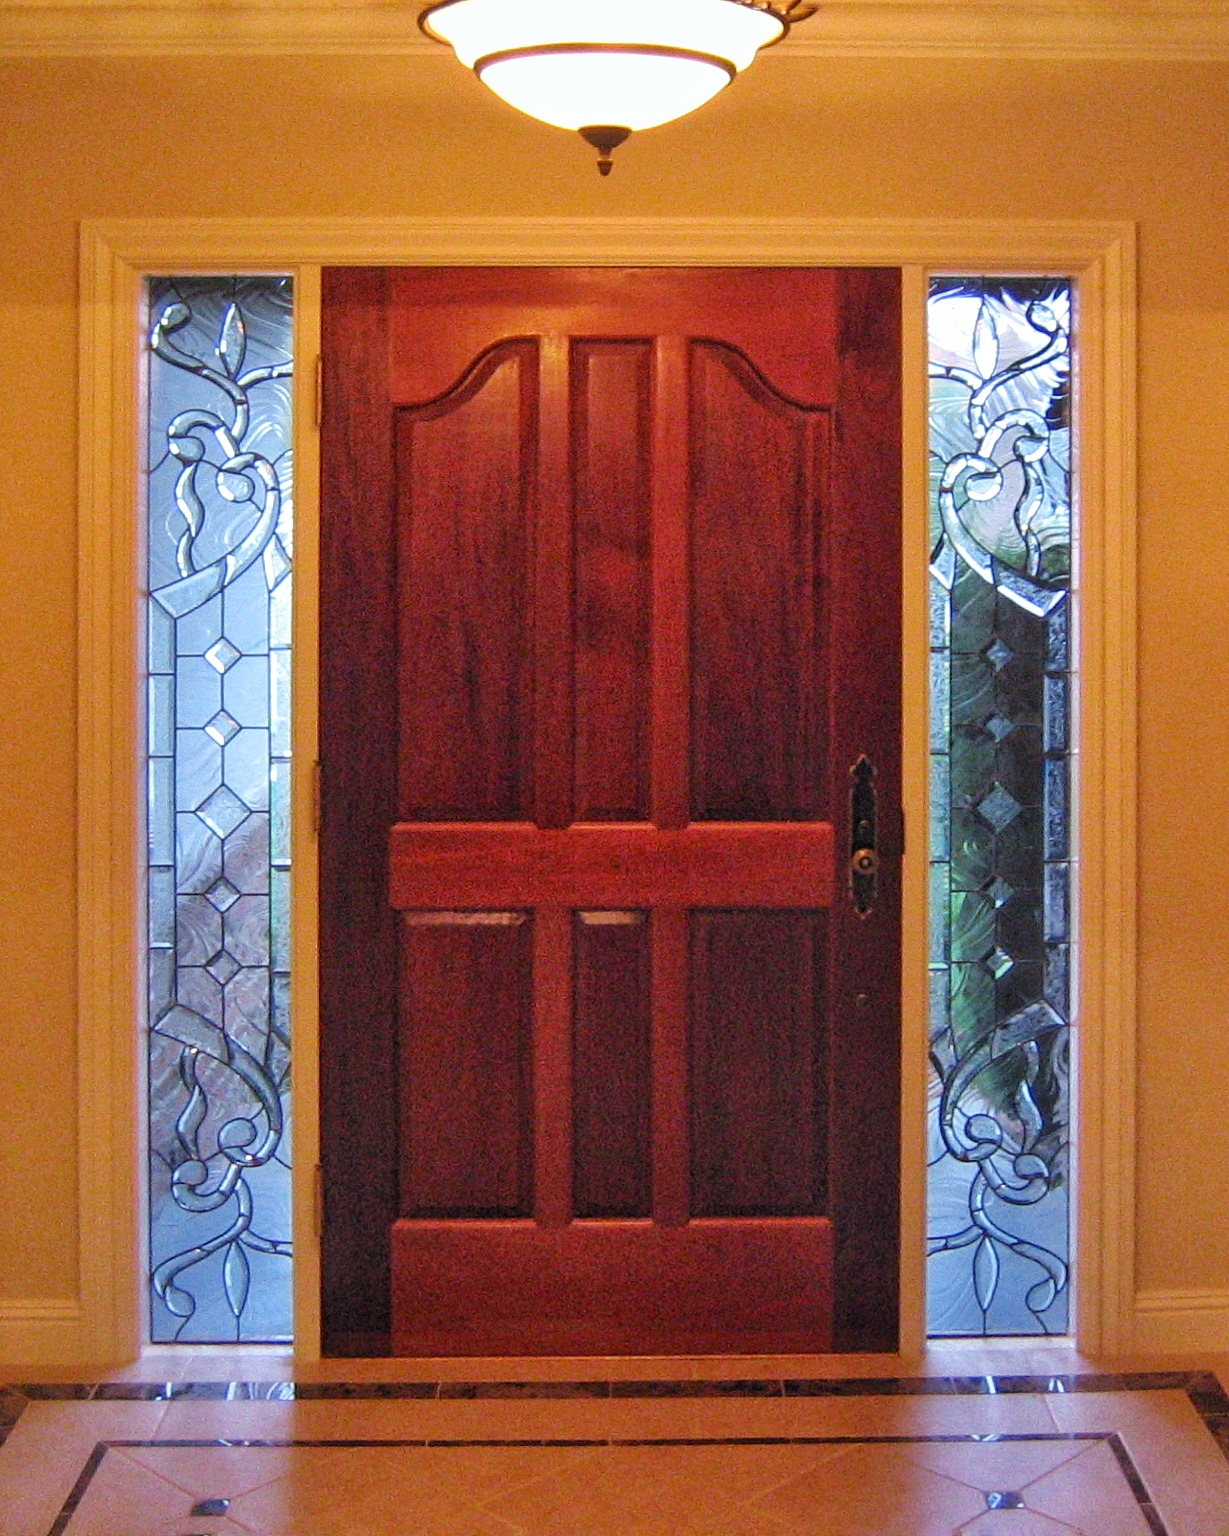 custom leaded glass sidelight inserts window custom bevels bevel cluser diamond glass curved abstract asymmetrical design legacy glass studios privacy obscure clear textured glass.jpg